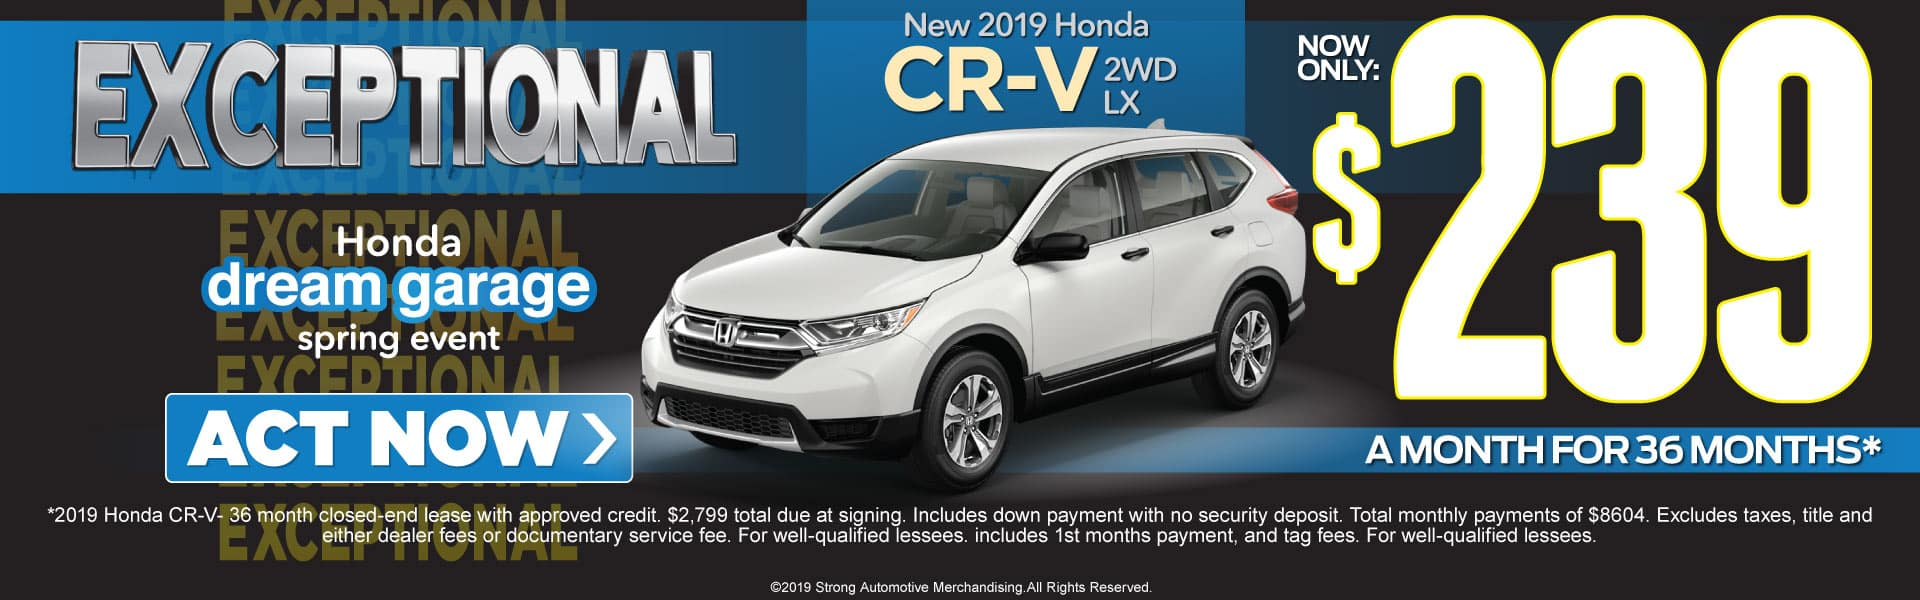 honda cr-v lease offer